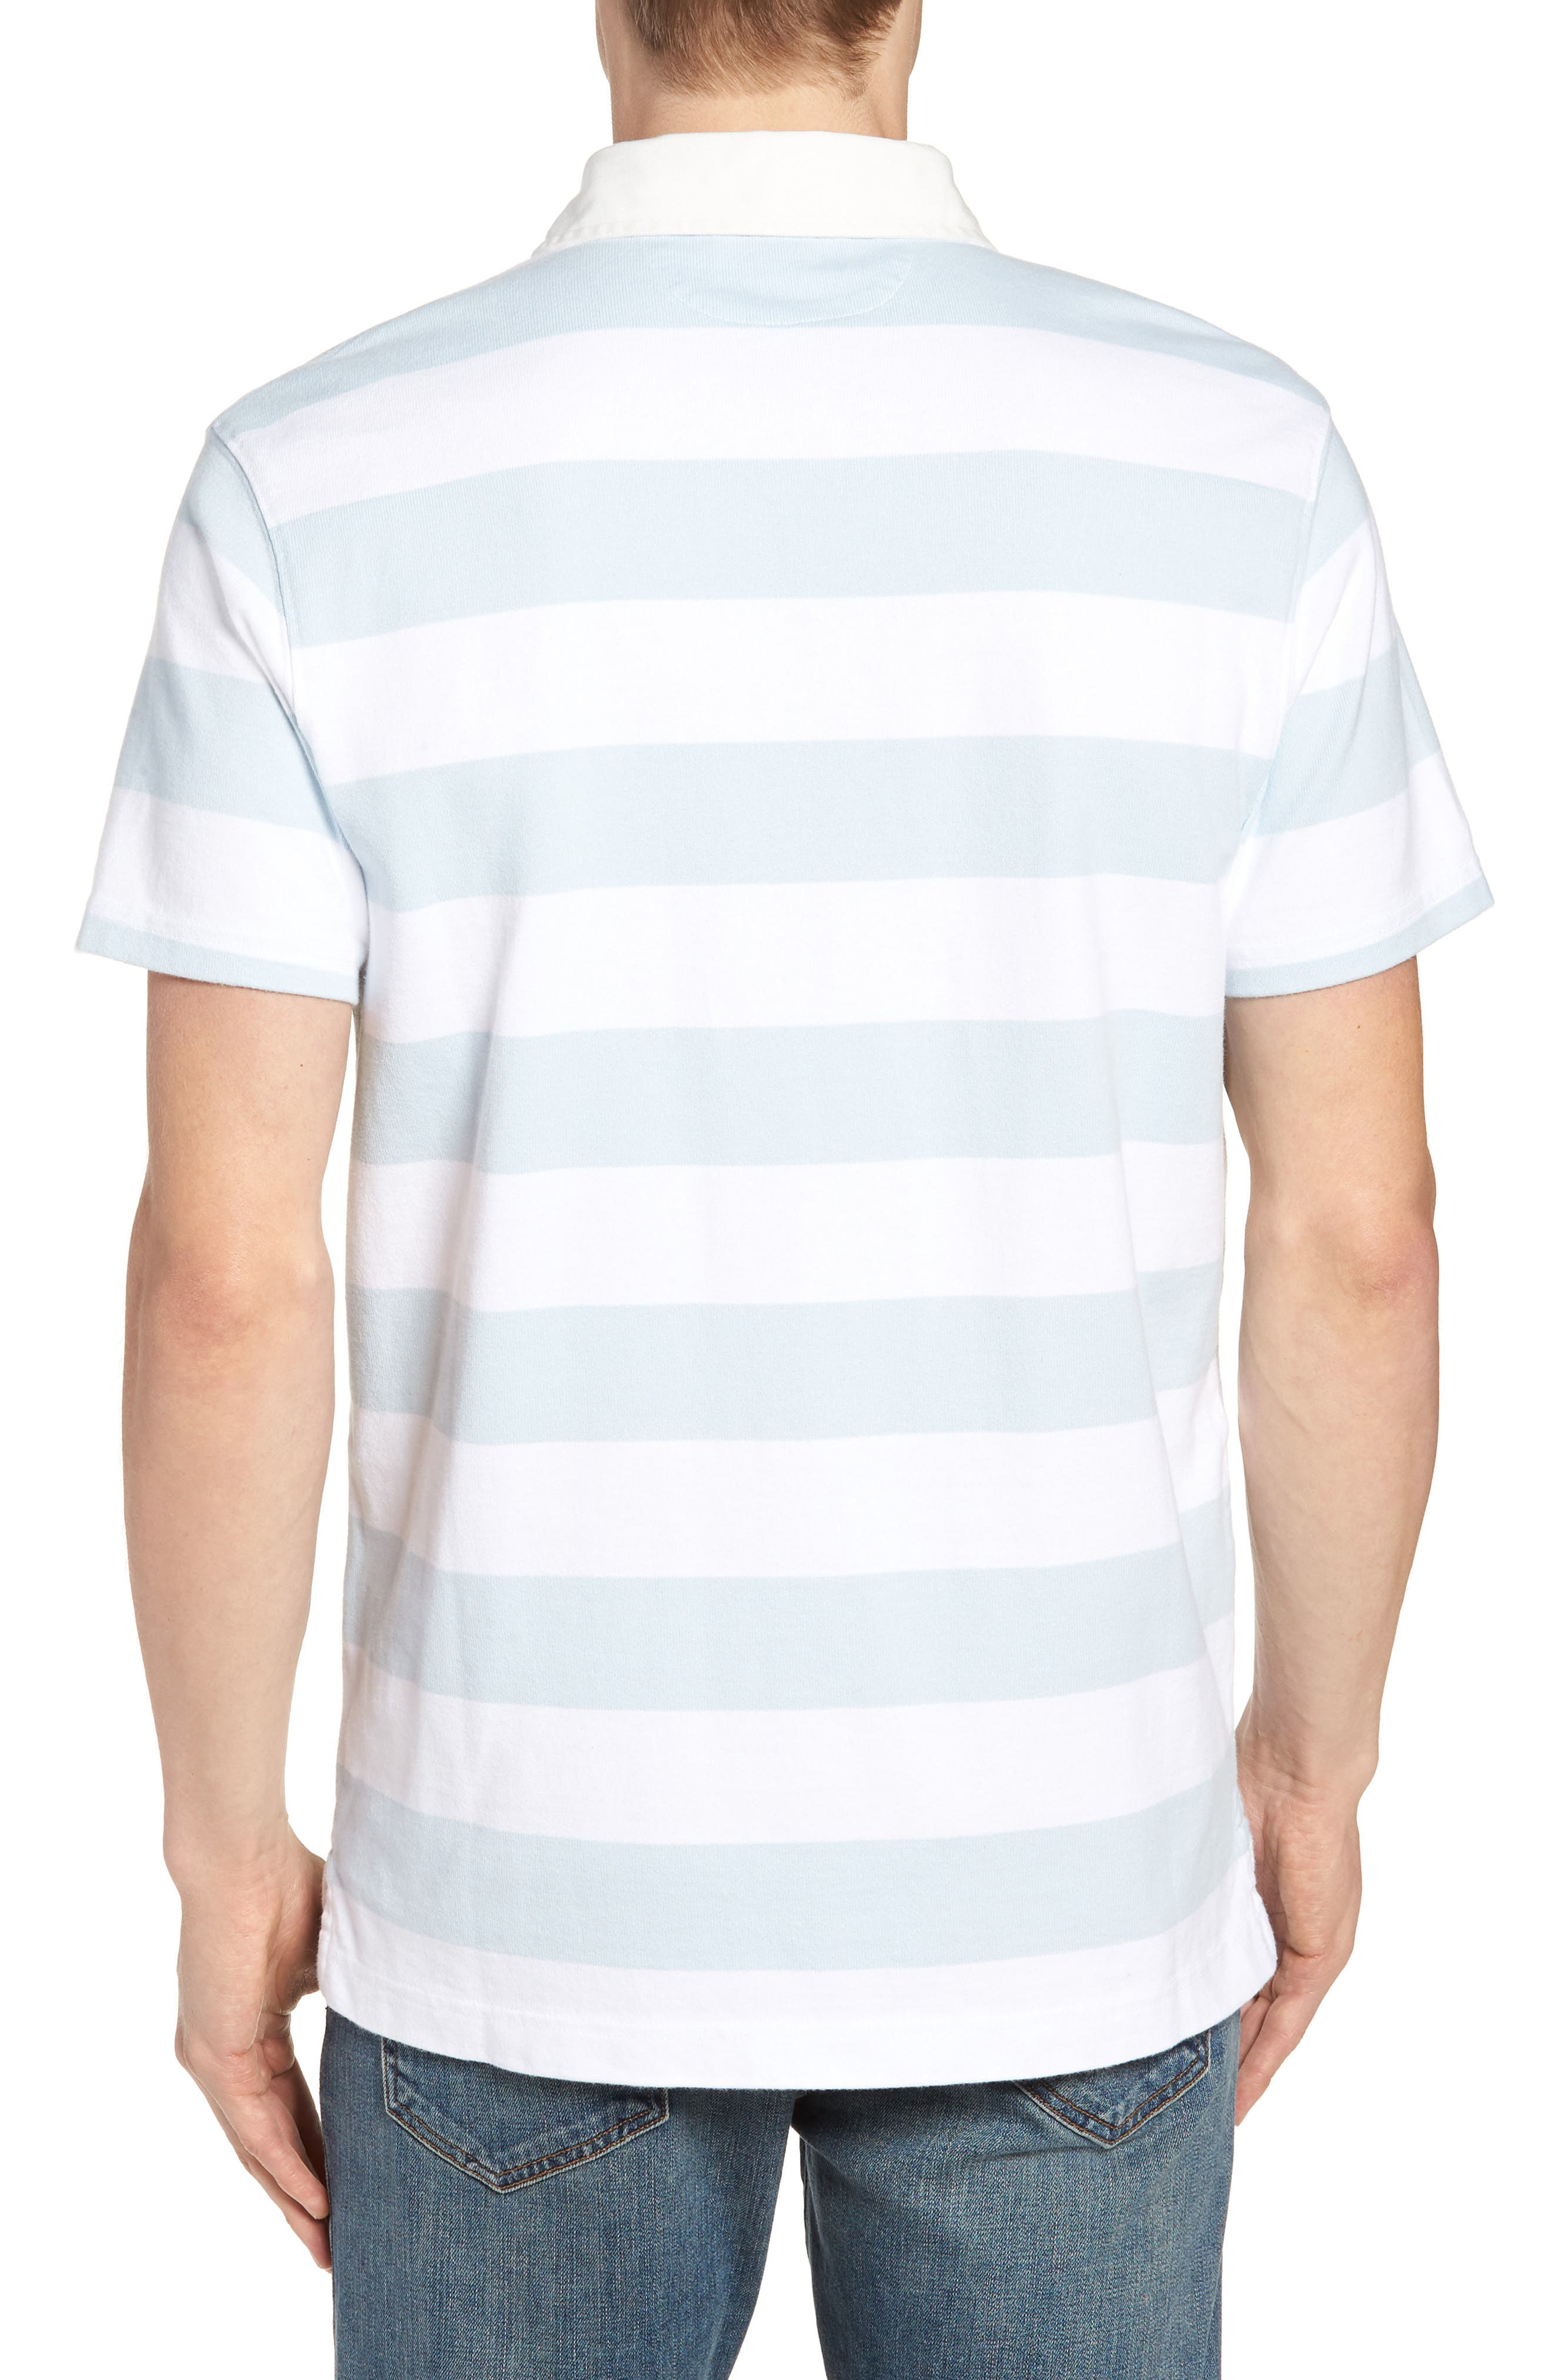 J.CREW,                             1984 Rugby Shirt,                             Alternate thumbnail 2, color,                             100